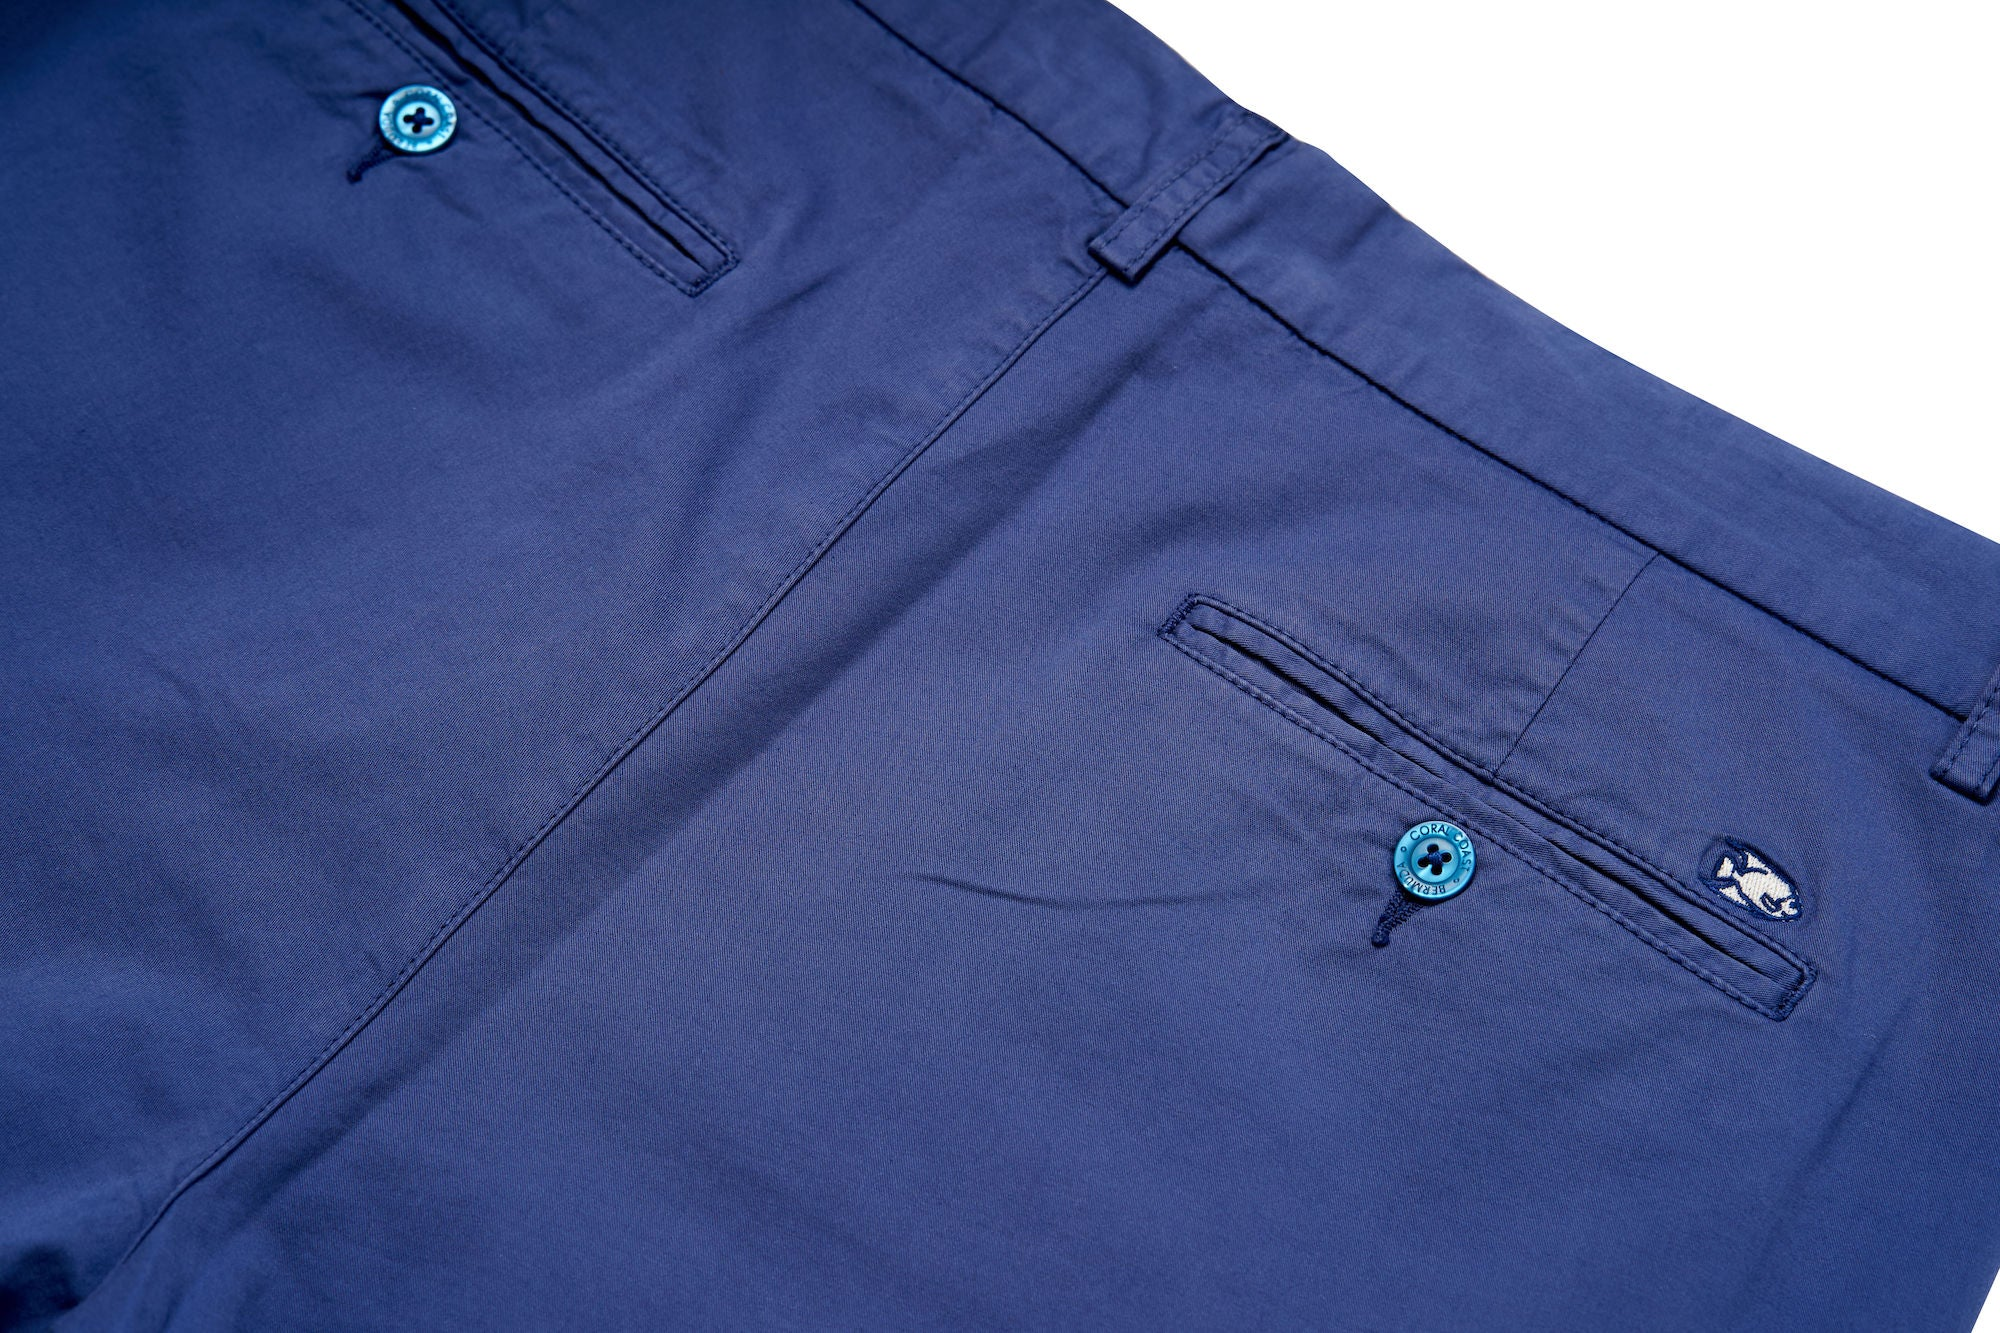 SKIPPER BLUE BERMUDA SHORT